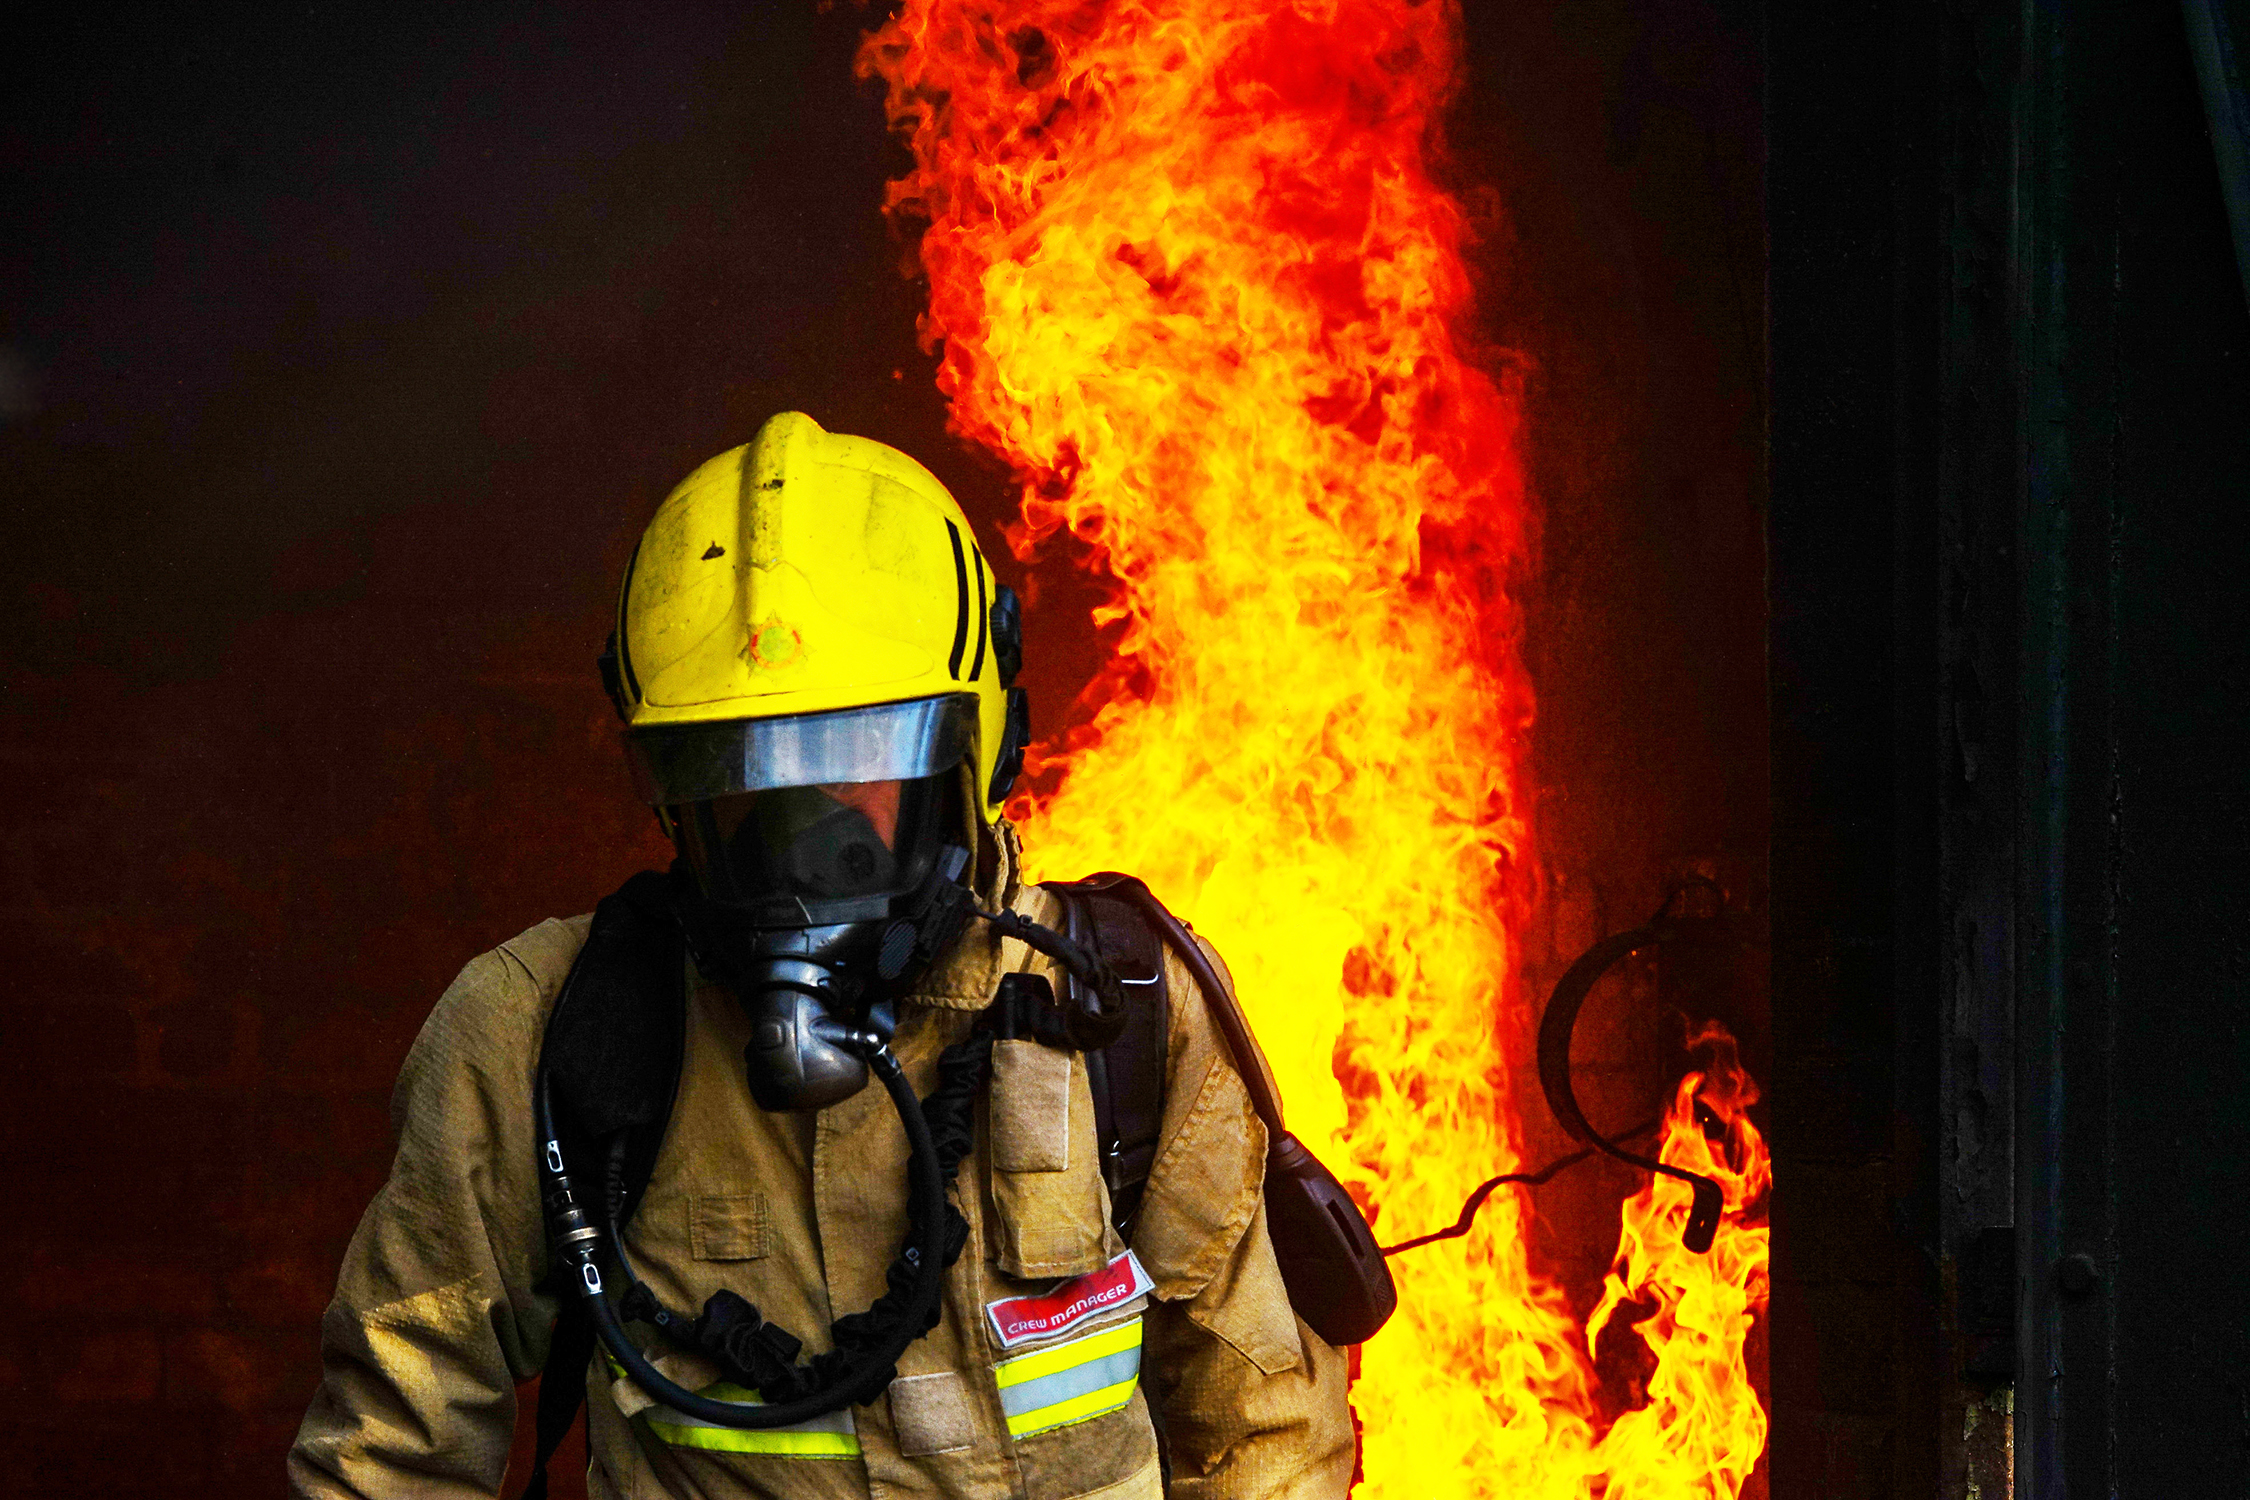 SCADA used to automate fire training for Staffordshire Fire & Rescue Services